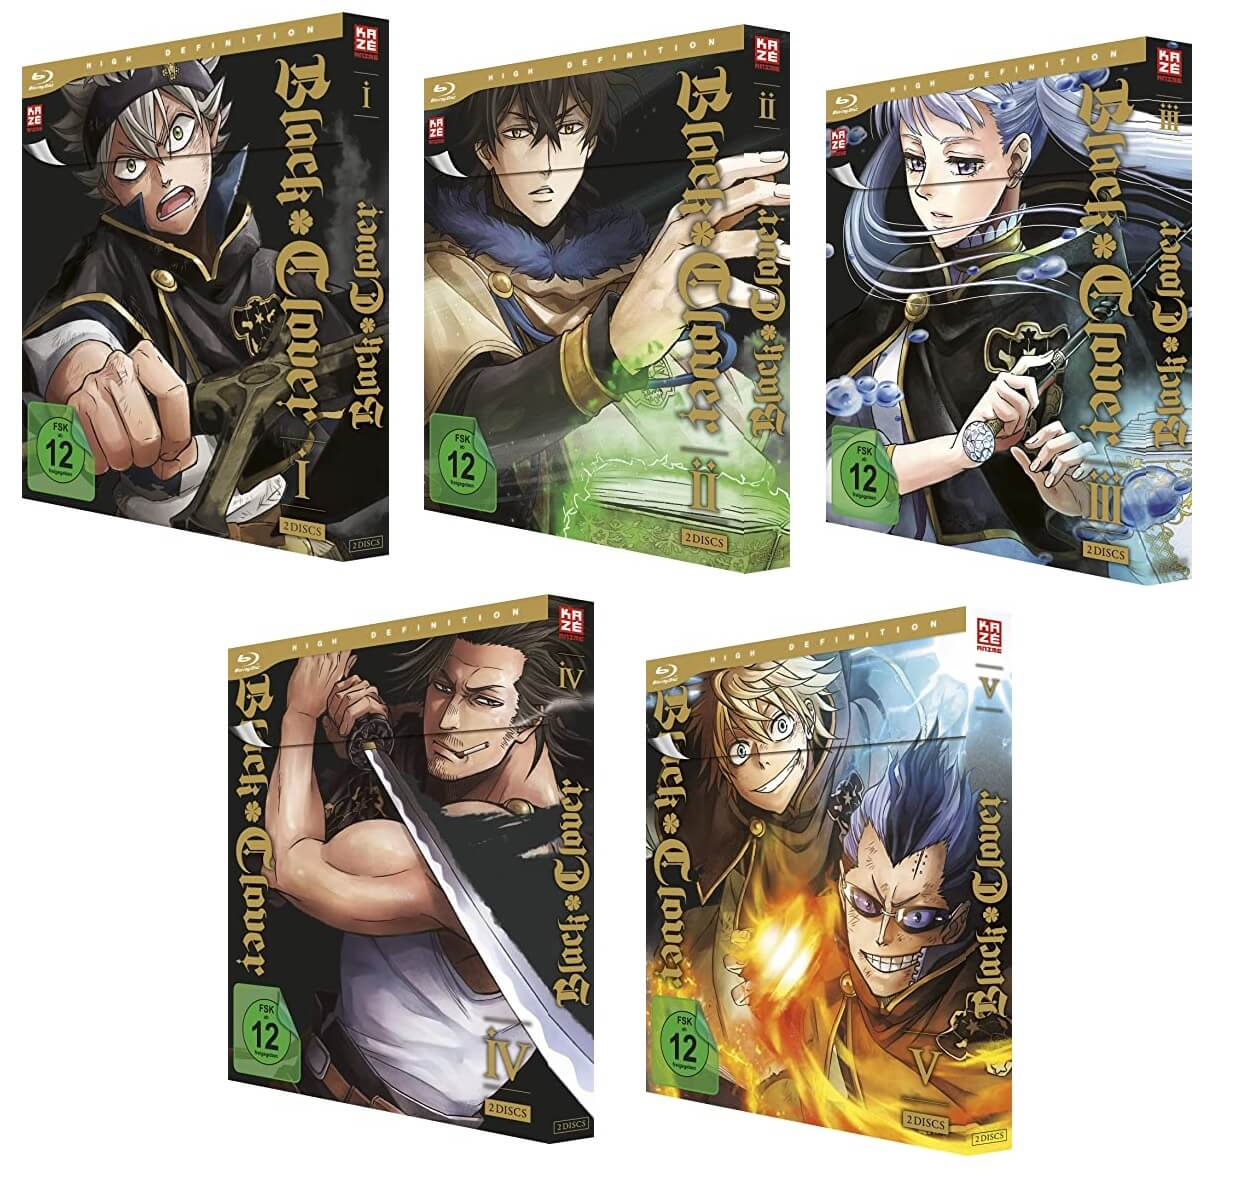 Black Clover Vol. 1-5